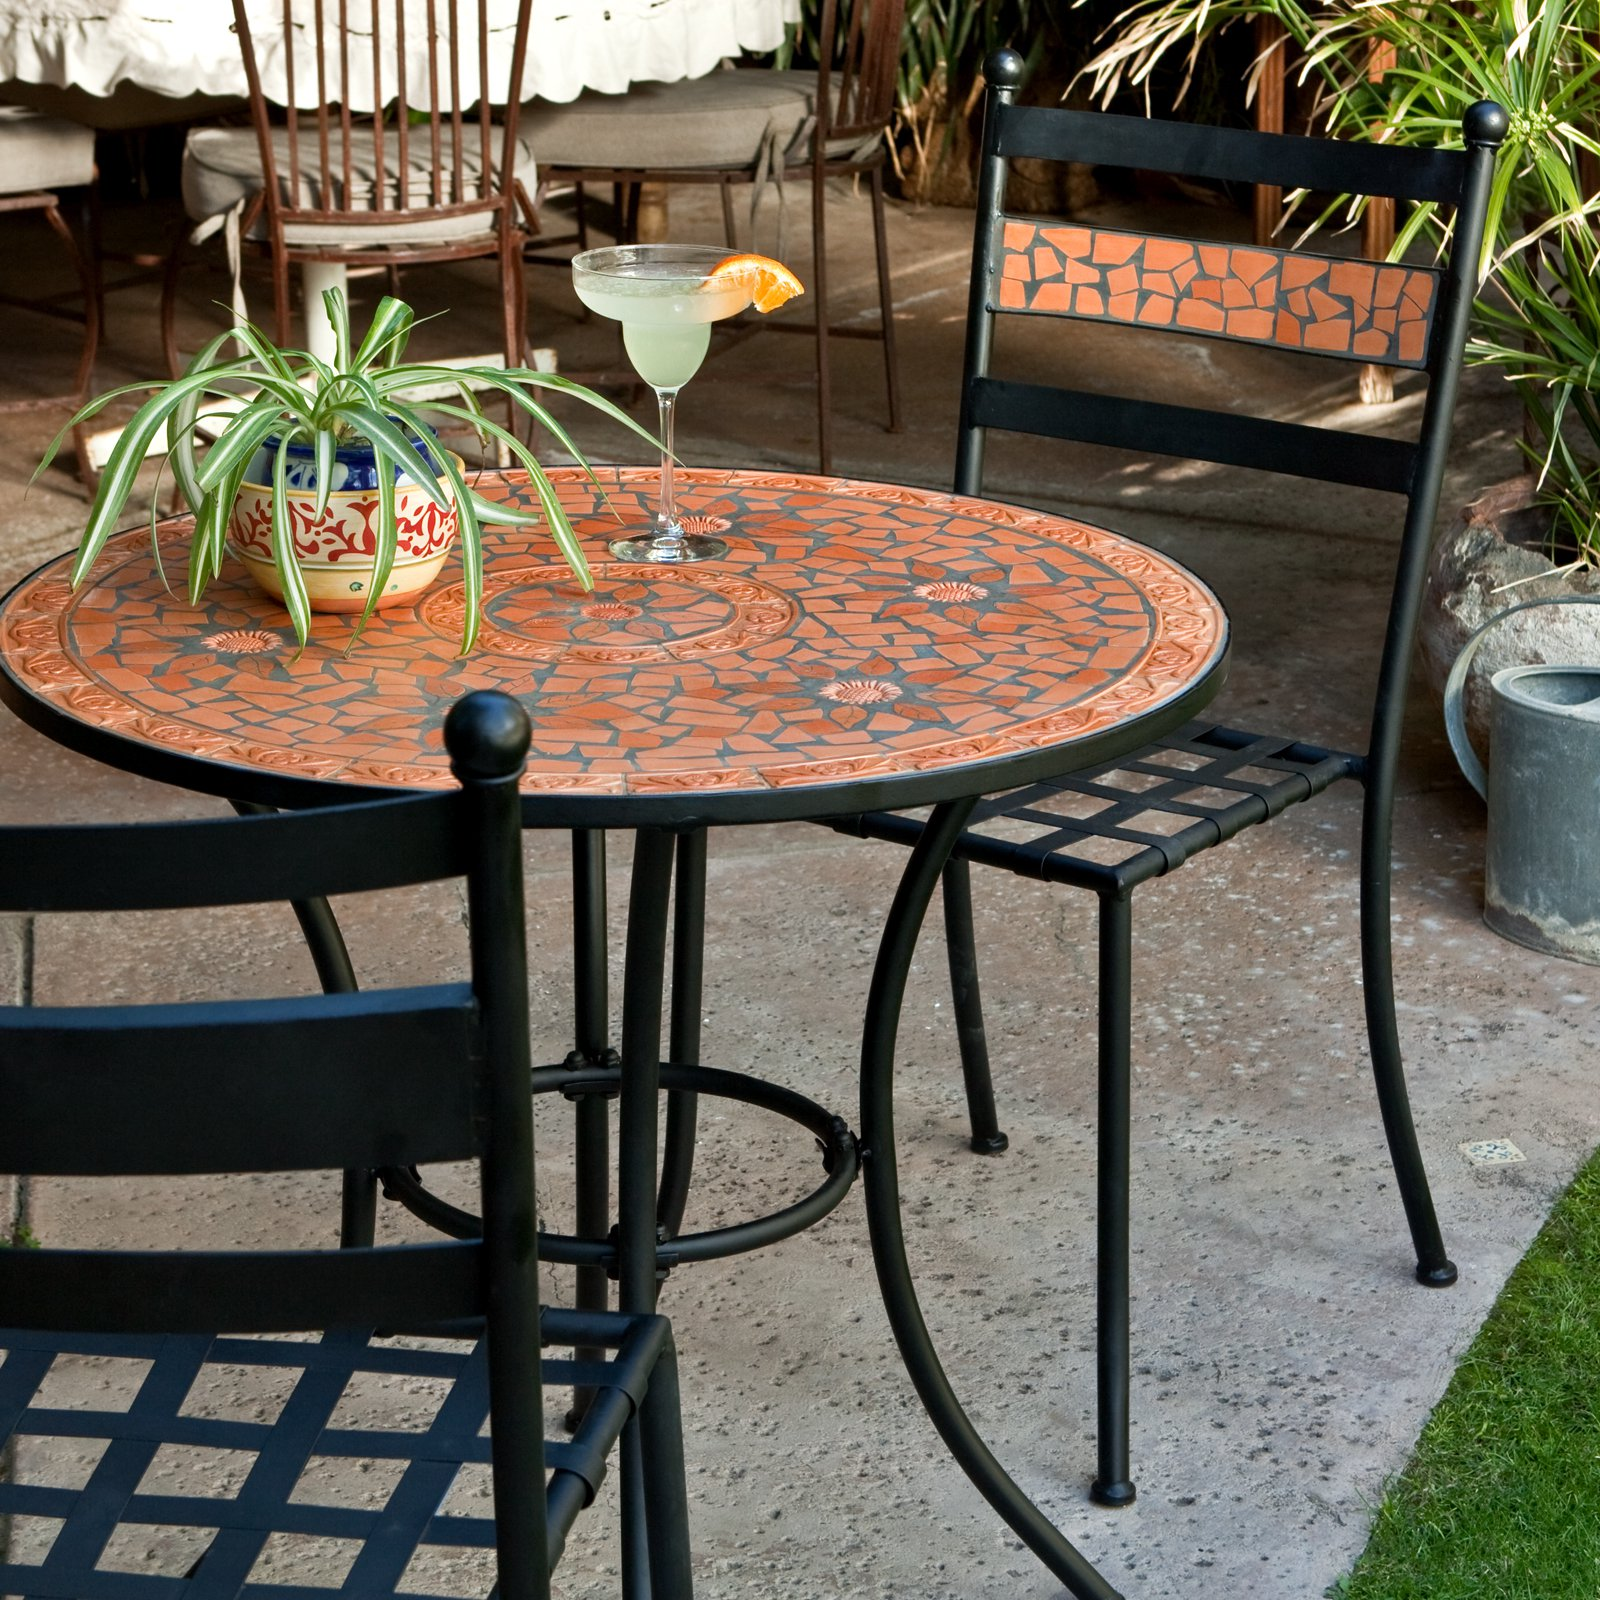 Coral Coast Terra Cotta Mosaic Bistro Set Walmartcom - Outdoor high top bistro table and chairs